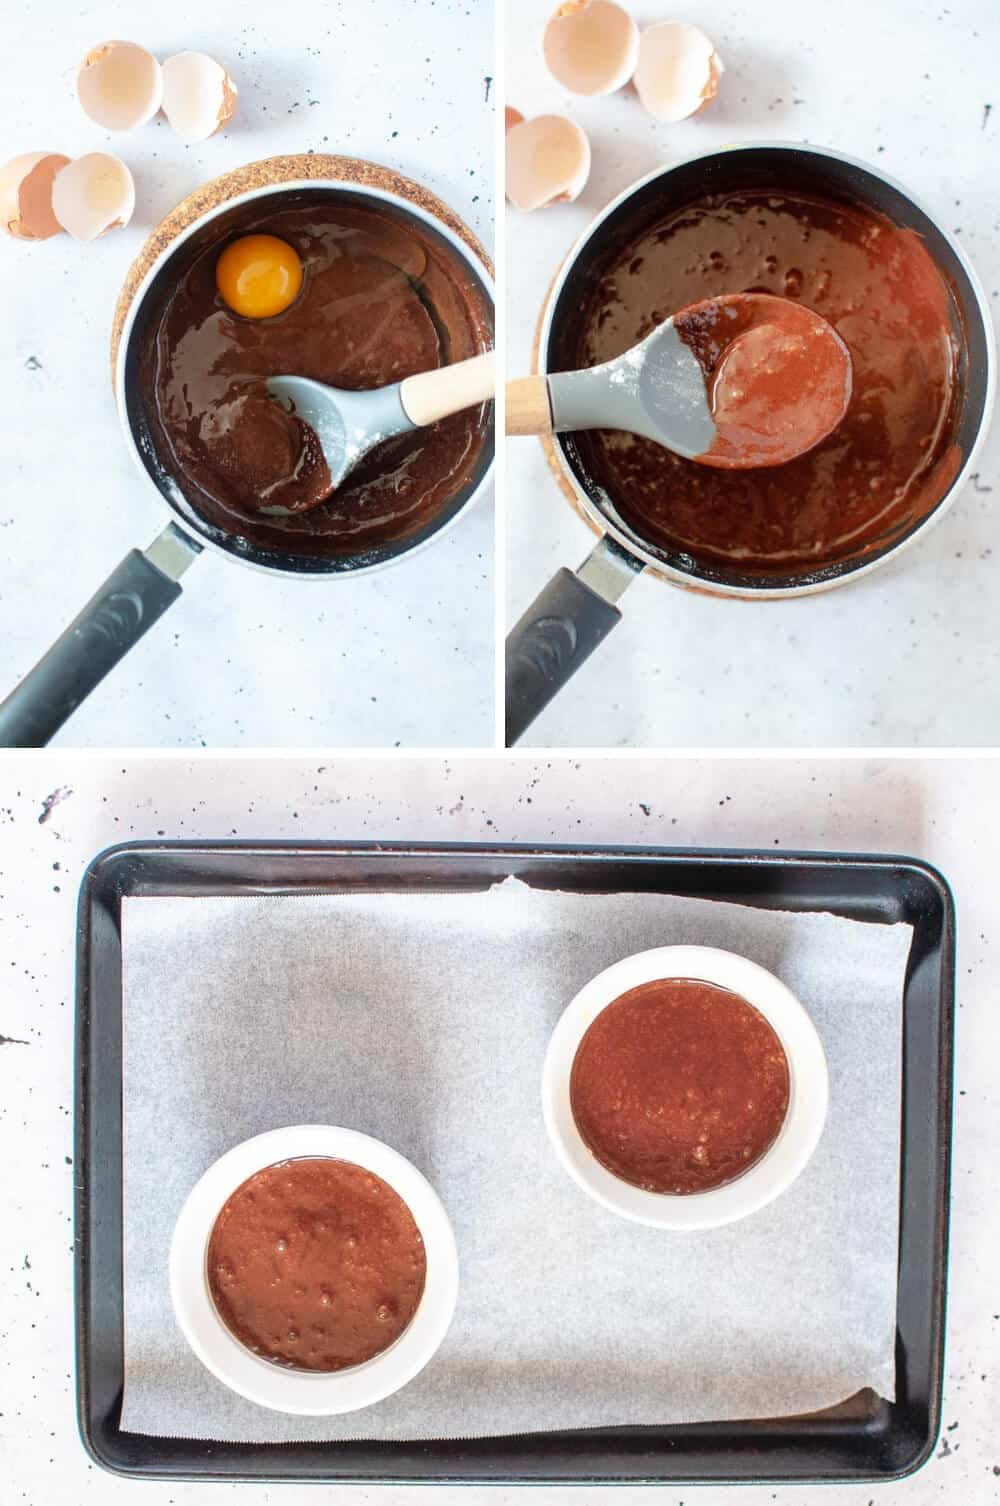 Chocolate self saucing pudding-prep